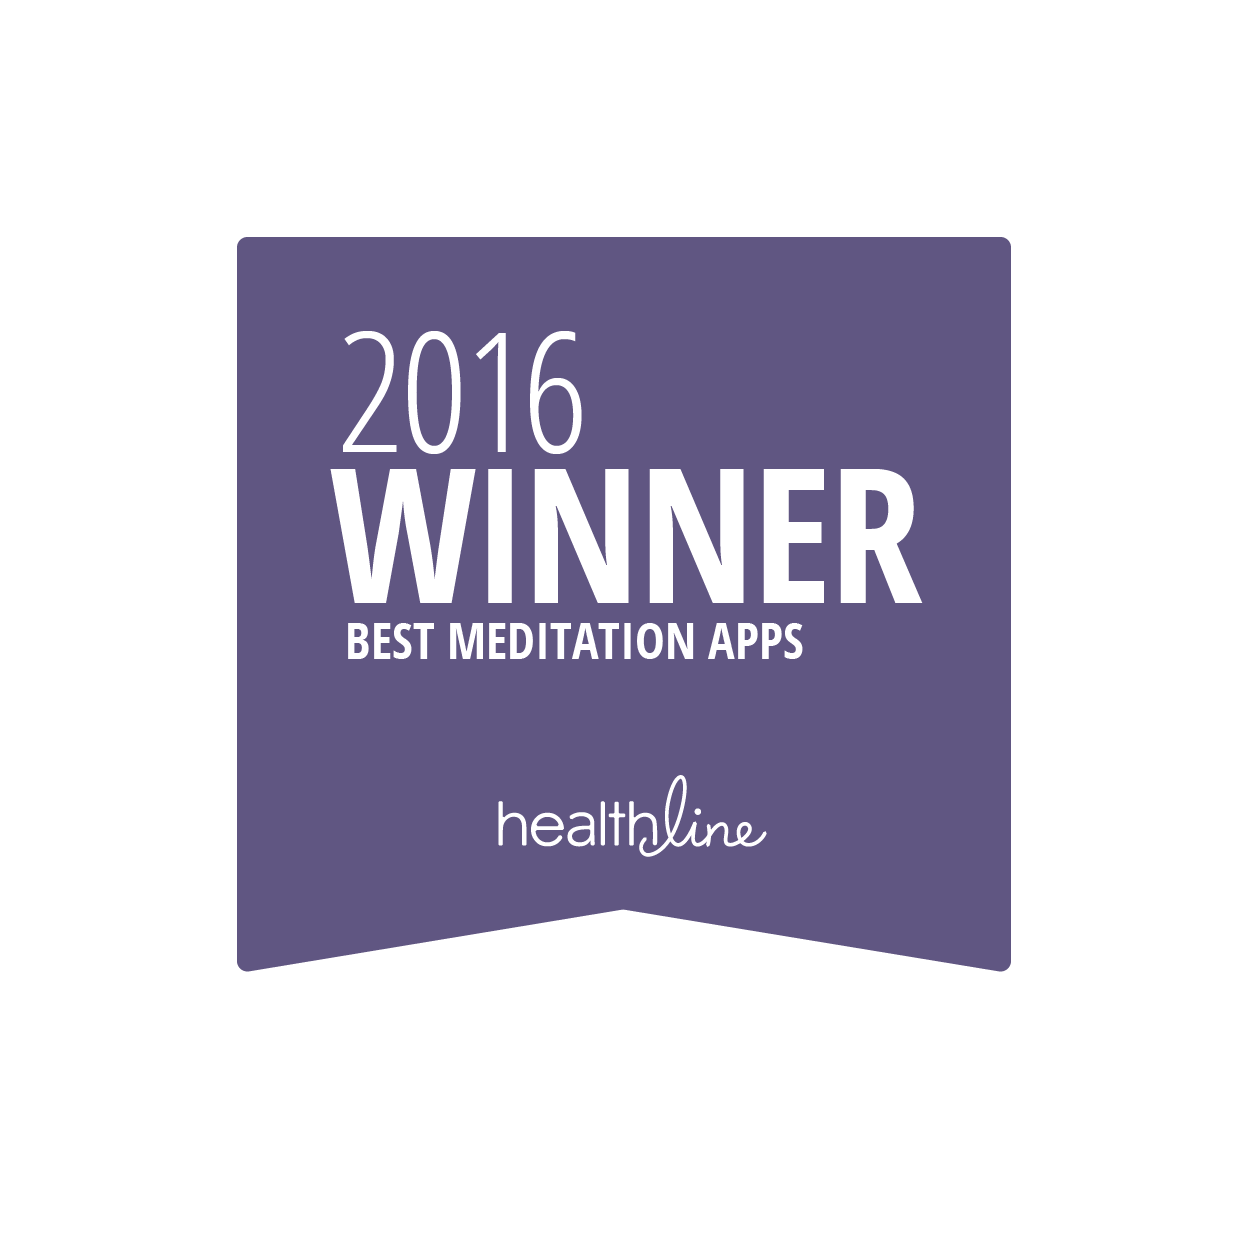 The Best Meditation Apps of 2016